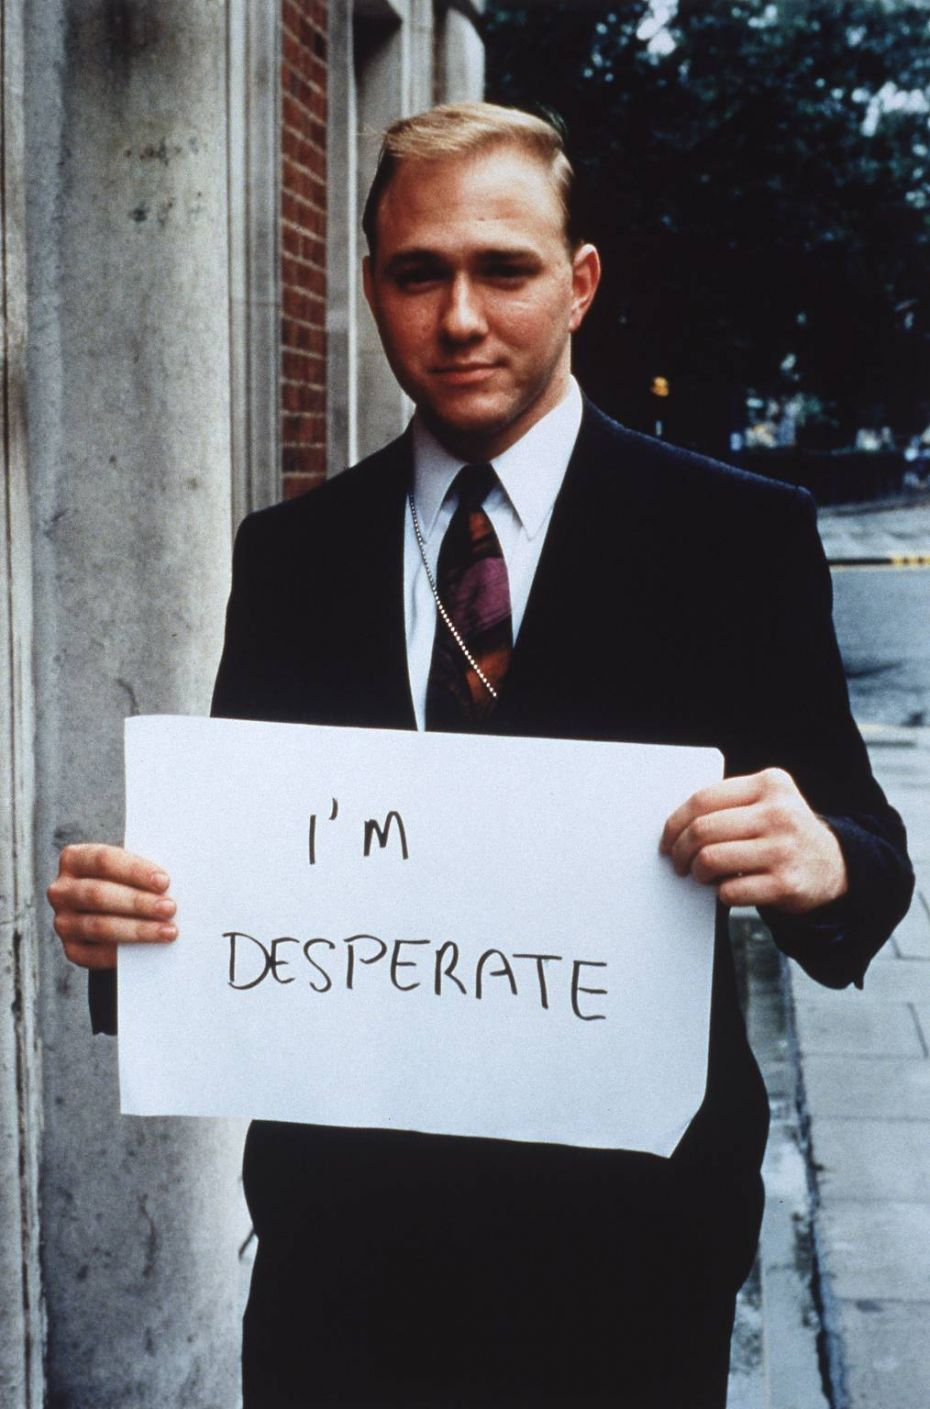 Gillian Wearing's photograph 'I'm desperate' from a larger series of more than 50 works (1992-3, Framed color photographs on photographic paper mounted on board, Each 48 x 36 ¼ in.)